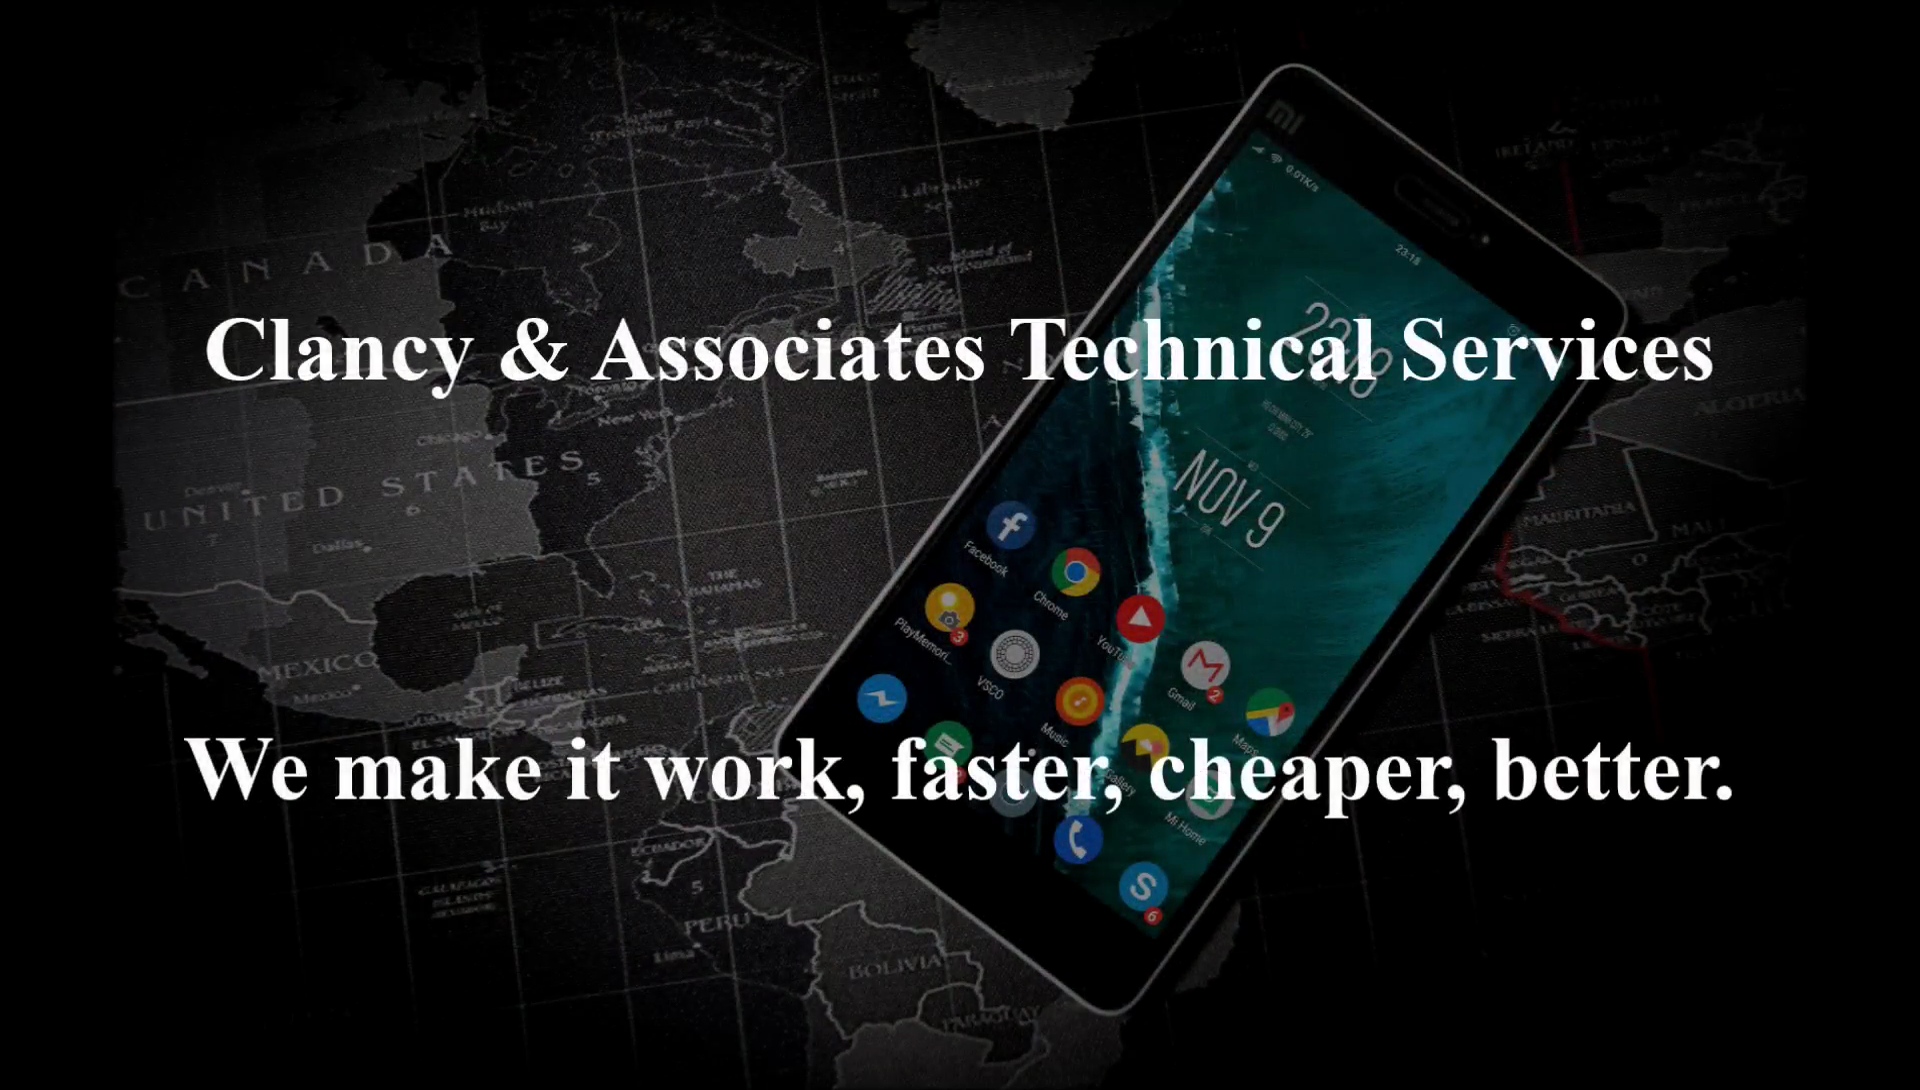 Clancy & Associates Technical Services LLC